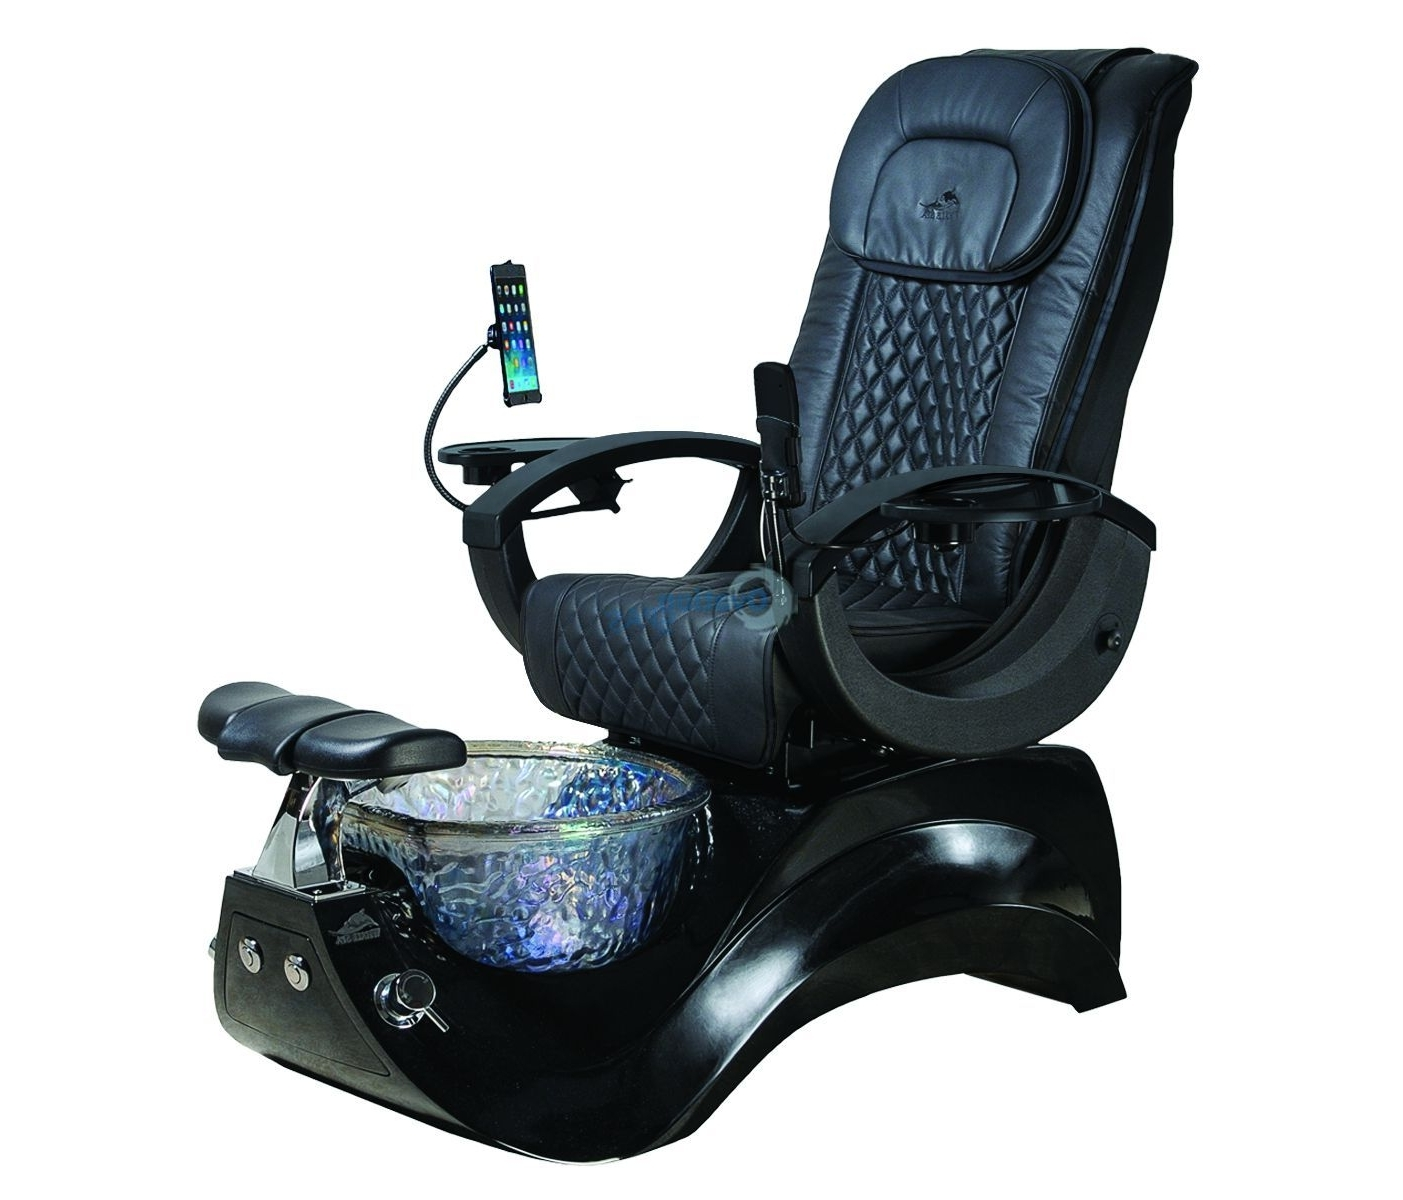 Favorite Sofa Pedicure Chairs Within Buy Best Quality Cheap Pedicure Chairs Wholesaleovation Spas (View 6 of 20)